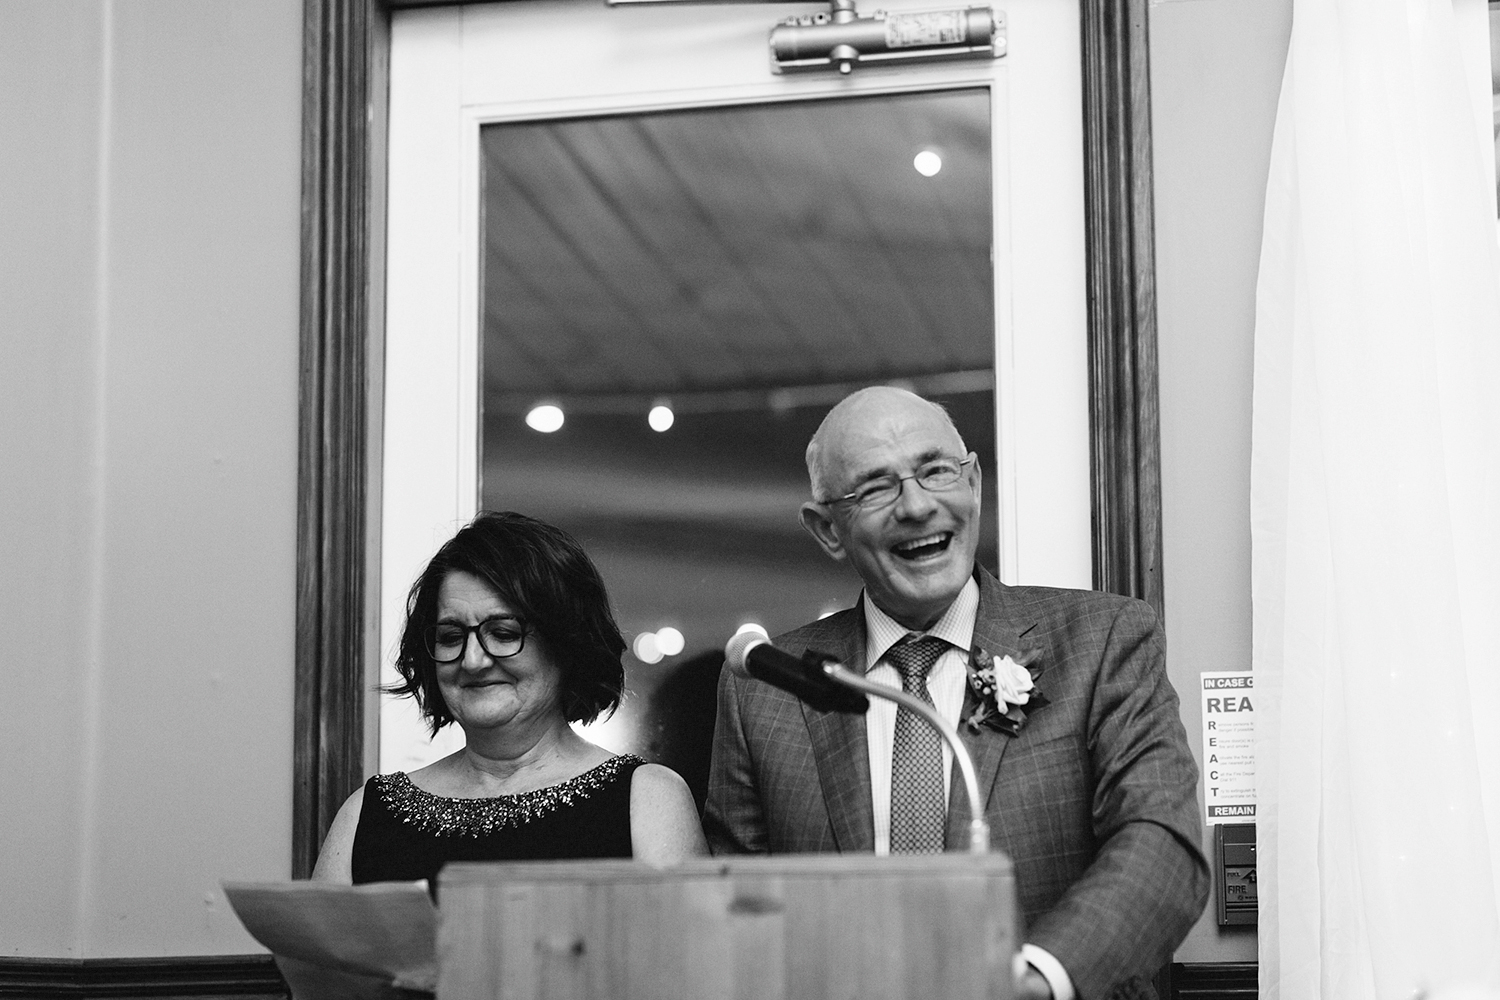 grooms-parents--speech-funny-jokes-during-reception-At-Eganridge-Resort-Venue-Muskoka-Ontario-Wedding-Photography-by-Ryanne-Hollies-Photography-Toronto-Documentary-Wedding-Photographer.jpg